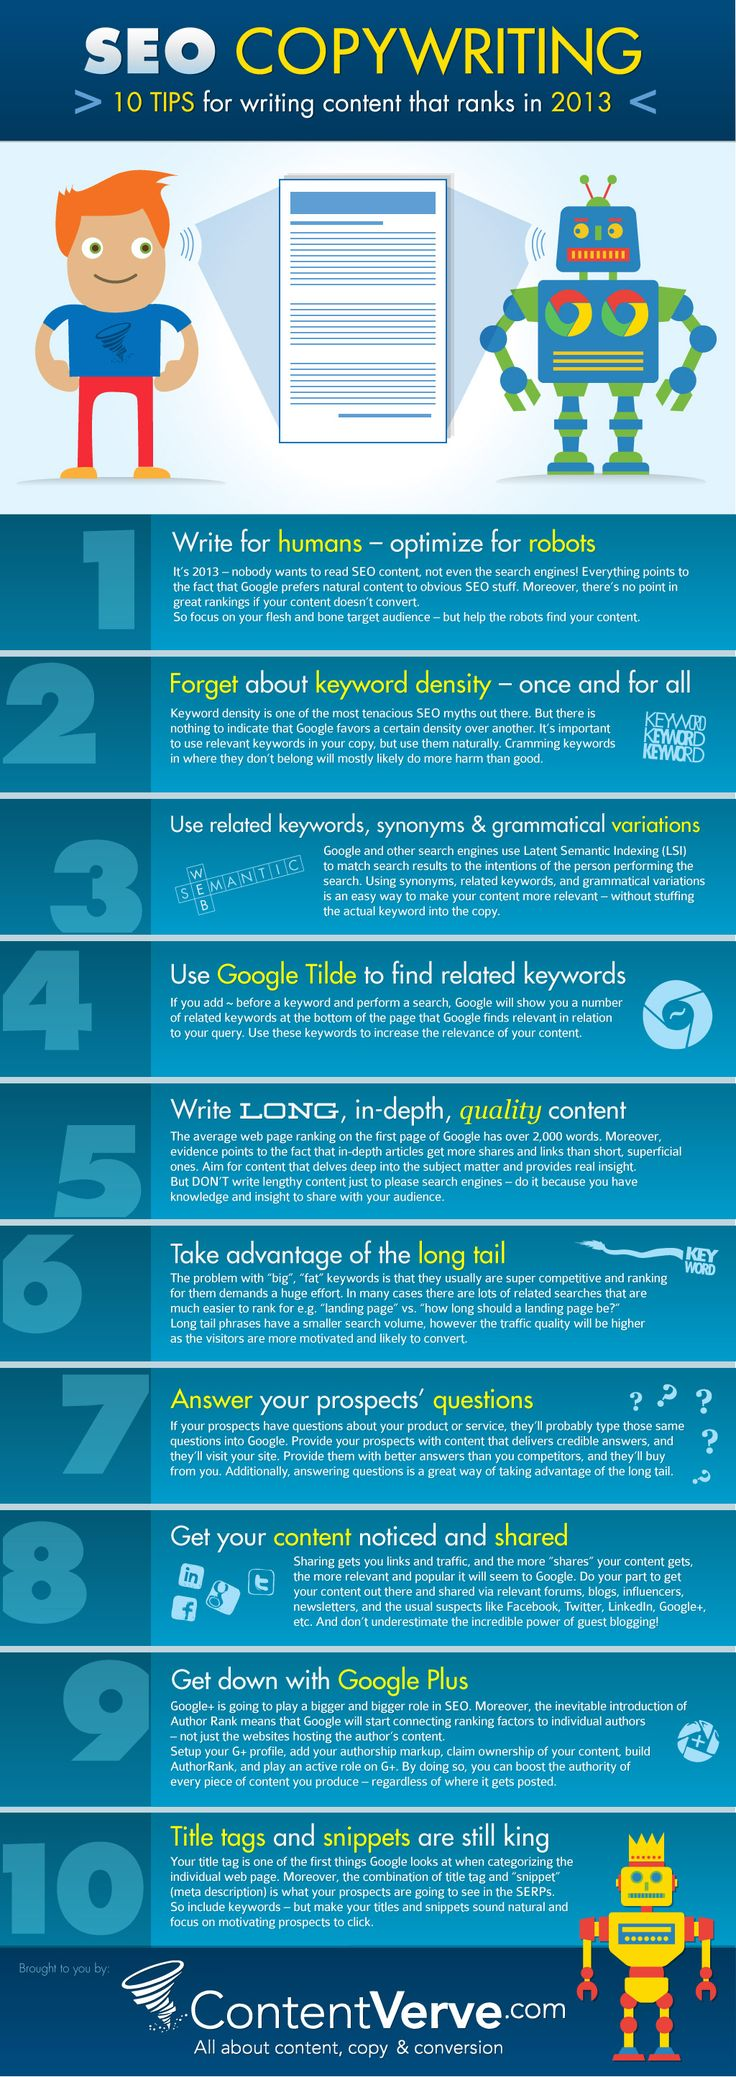 10ways to write content that ranks high on google. Infographic.